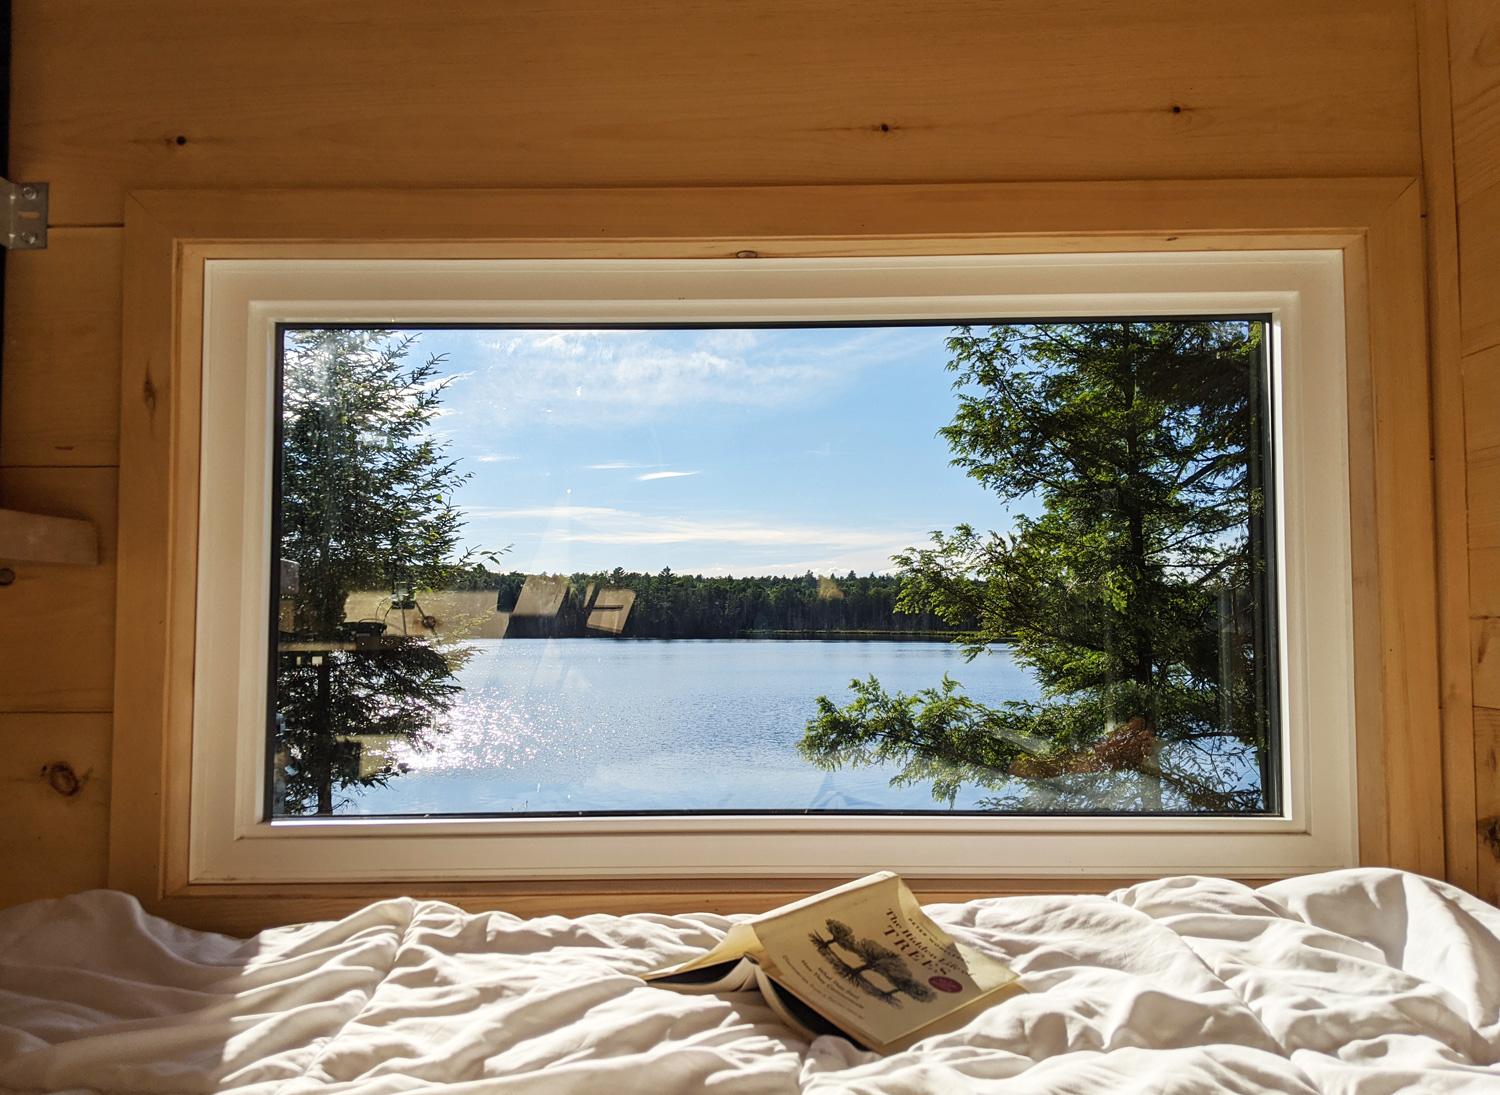 Win an Ontario cabin getaway | The Narwhal